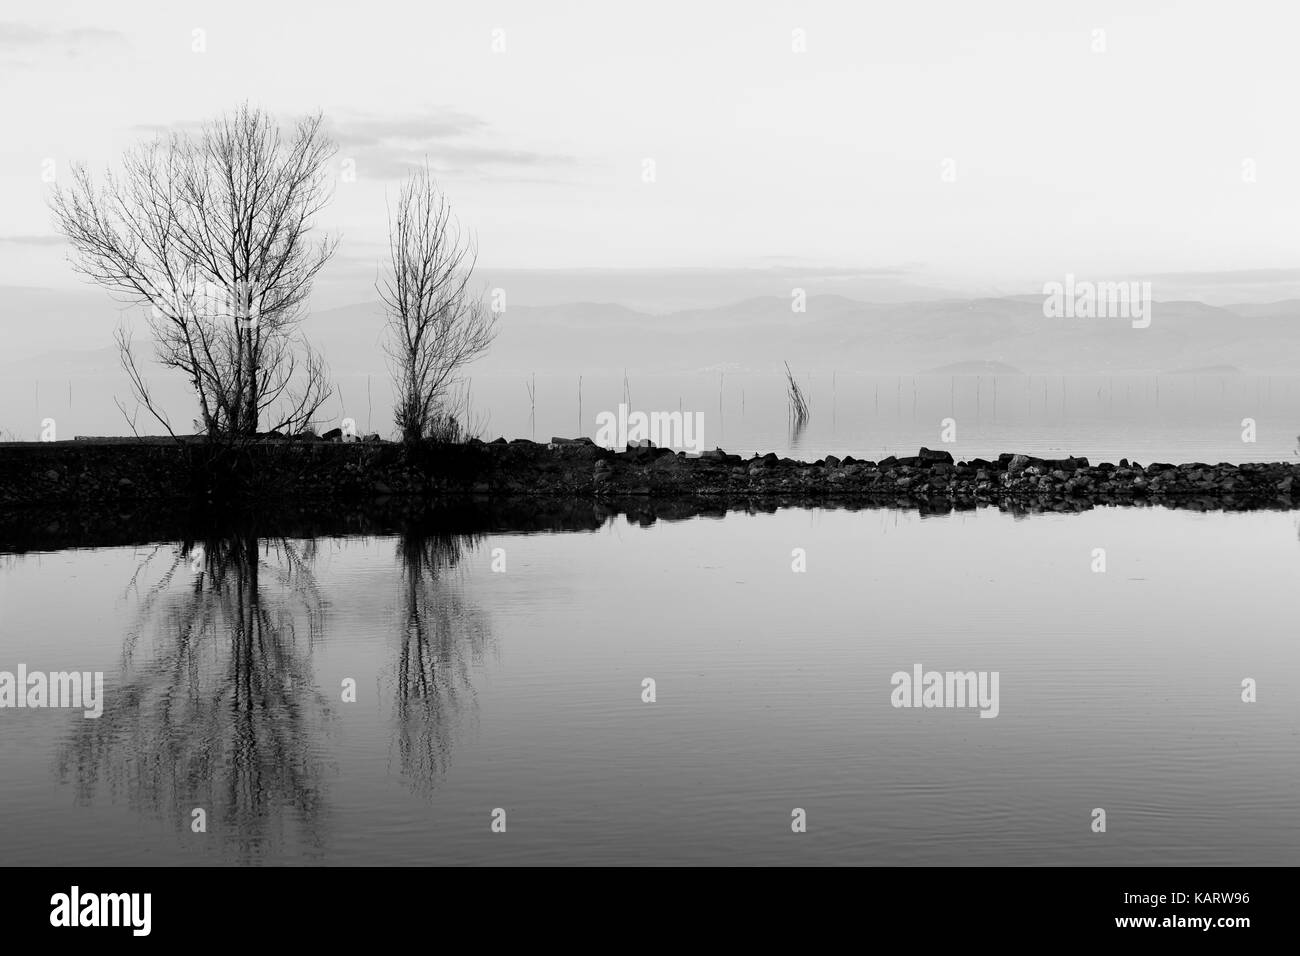 A symmetric photo of a lake, with trees and clouds reflections on water and soft tones - Stock Image